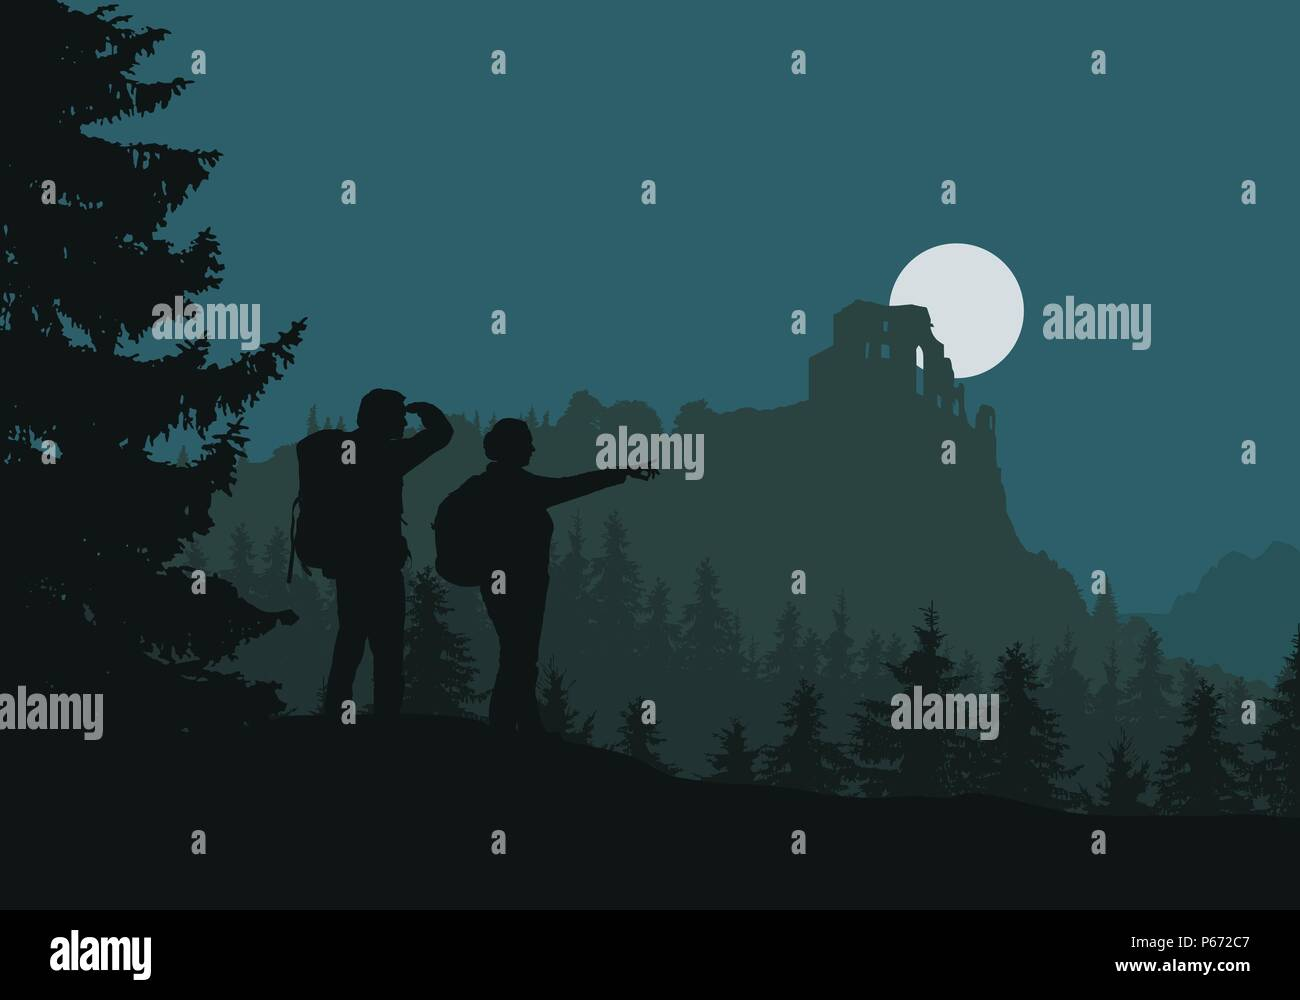 Two tourists go to castle ruins, green forest between mountains and hills, under night sky with moon - vector - Stock Vector